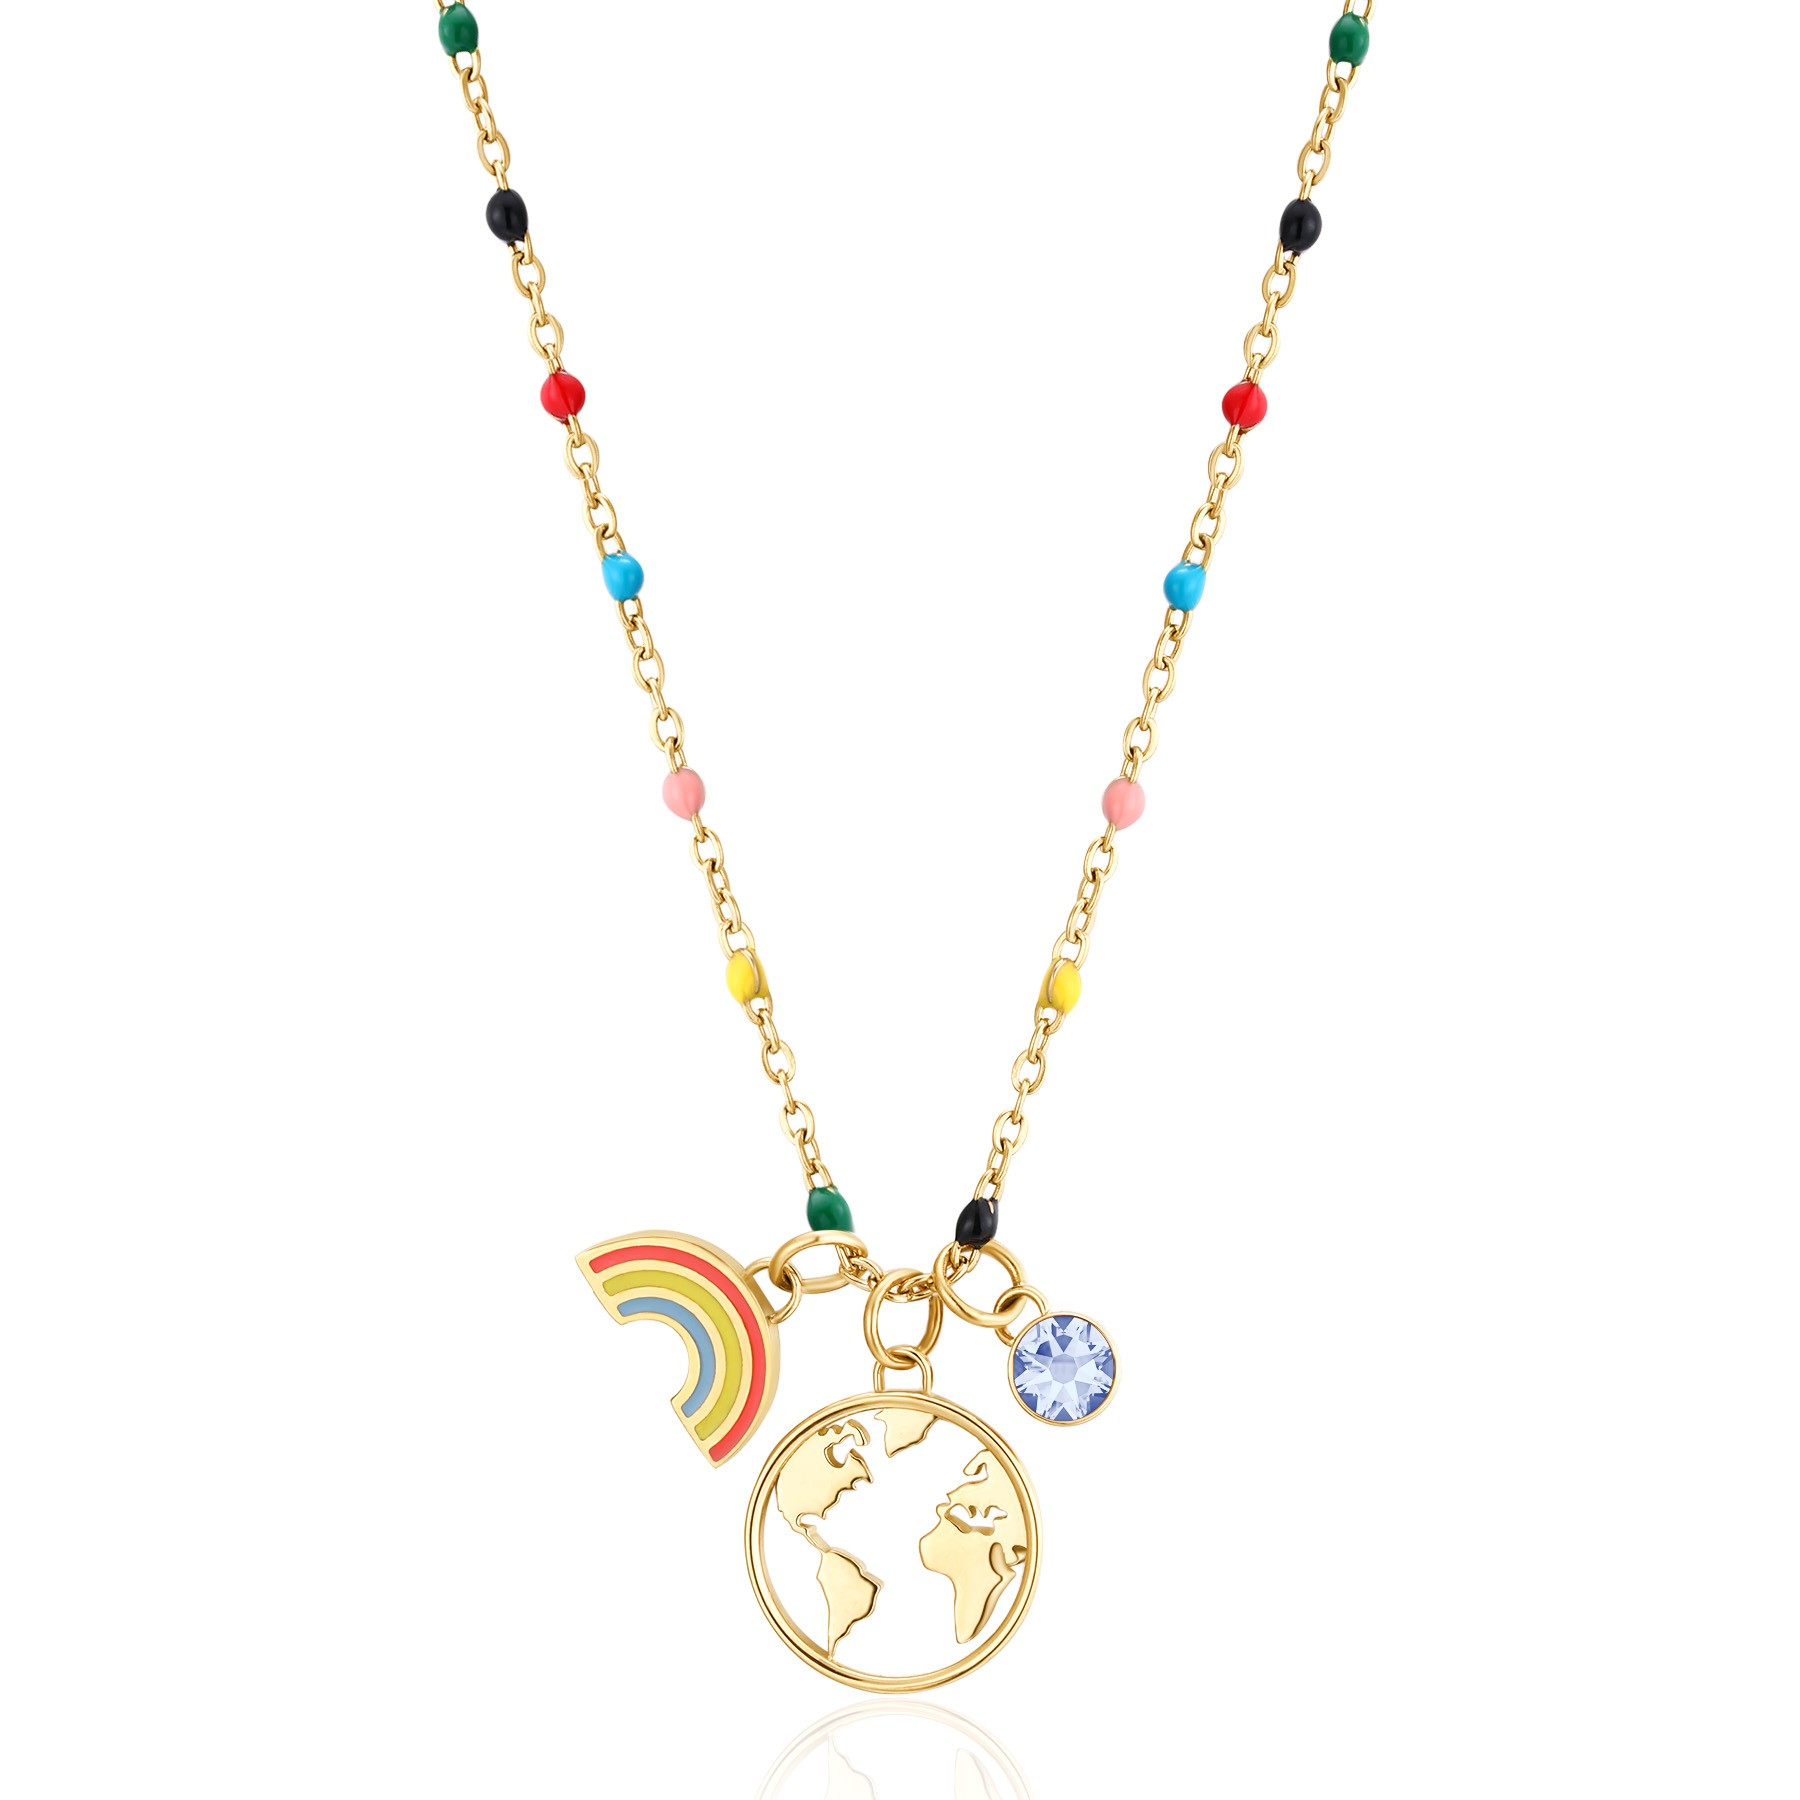 Chakra necklace with World charm and Rainbow